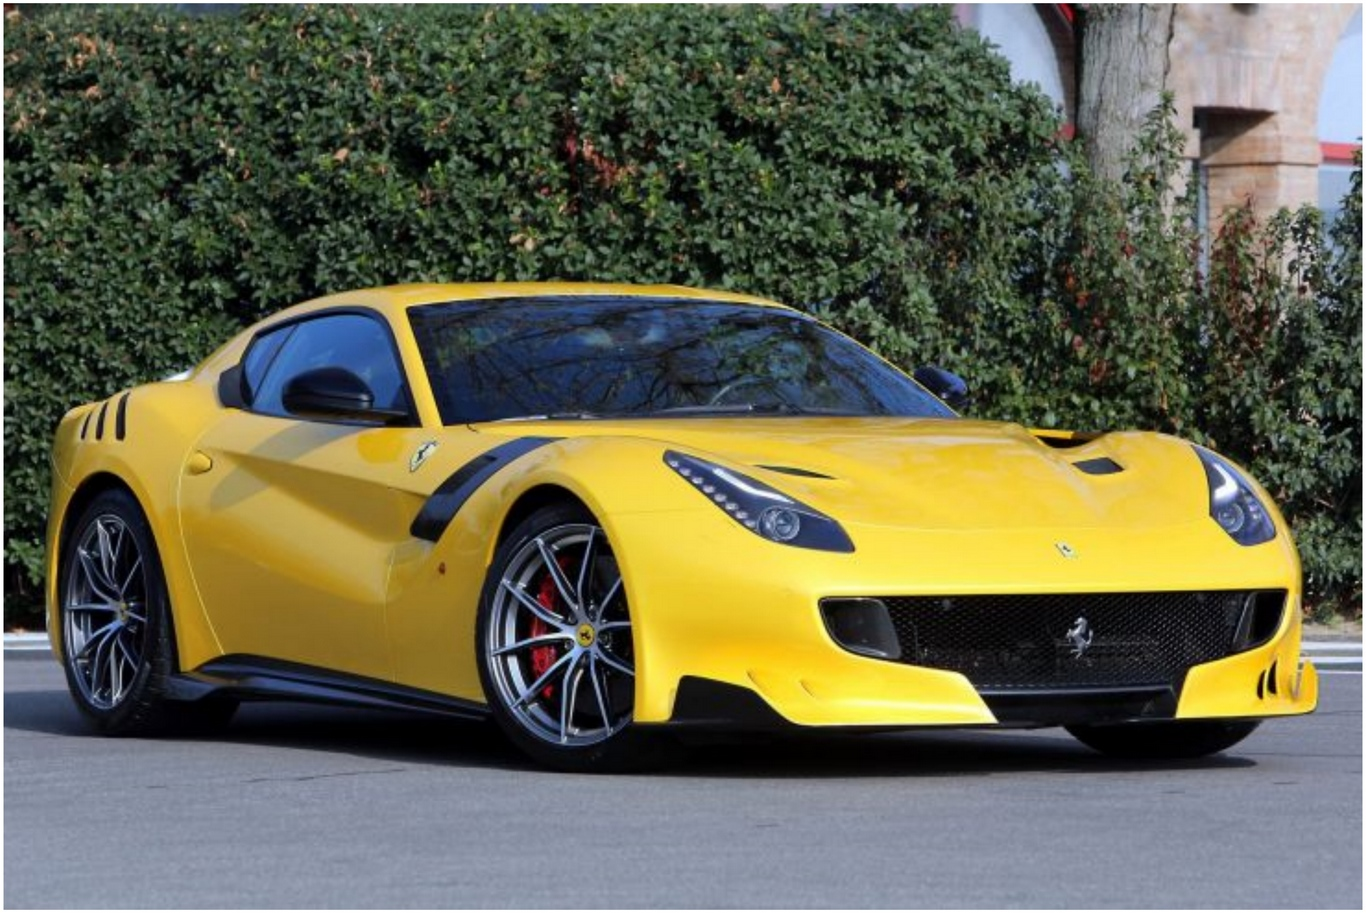 Ferrari New 2016 Car Models Include: